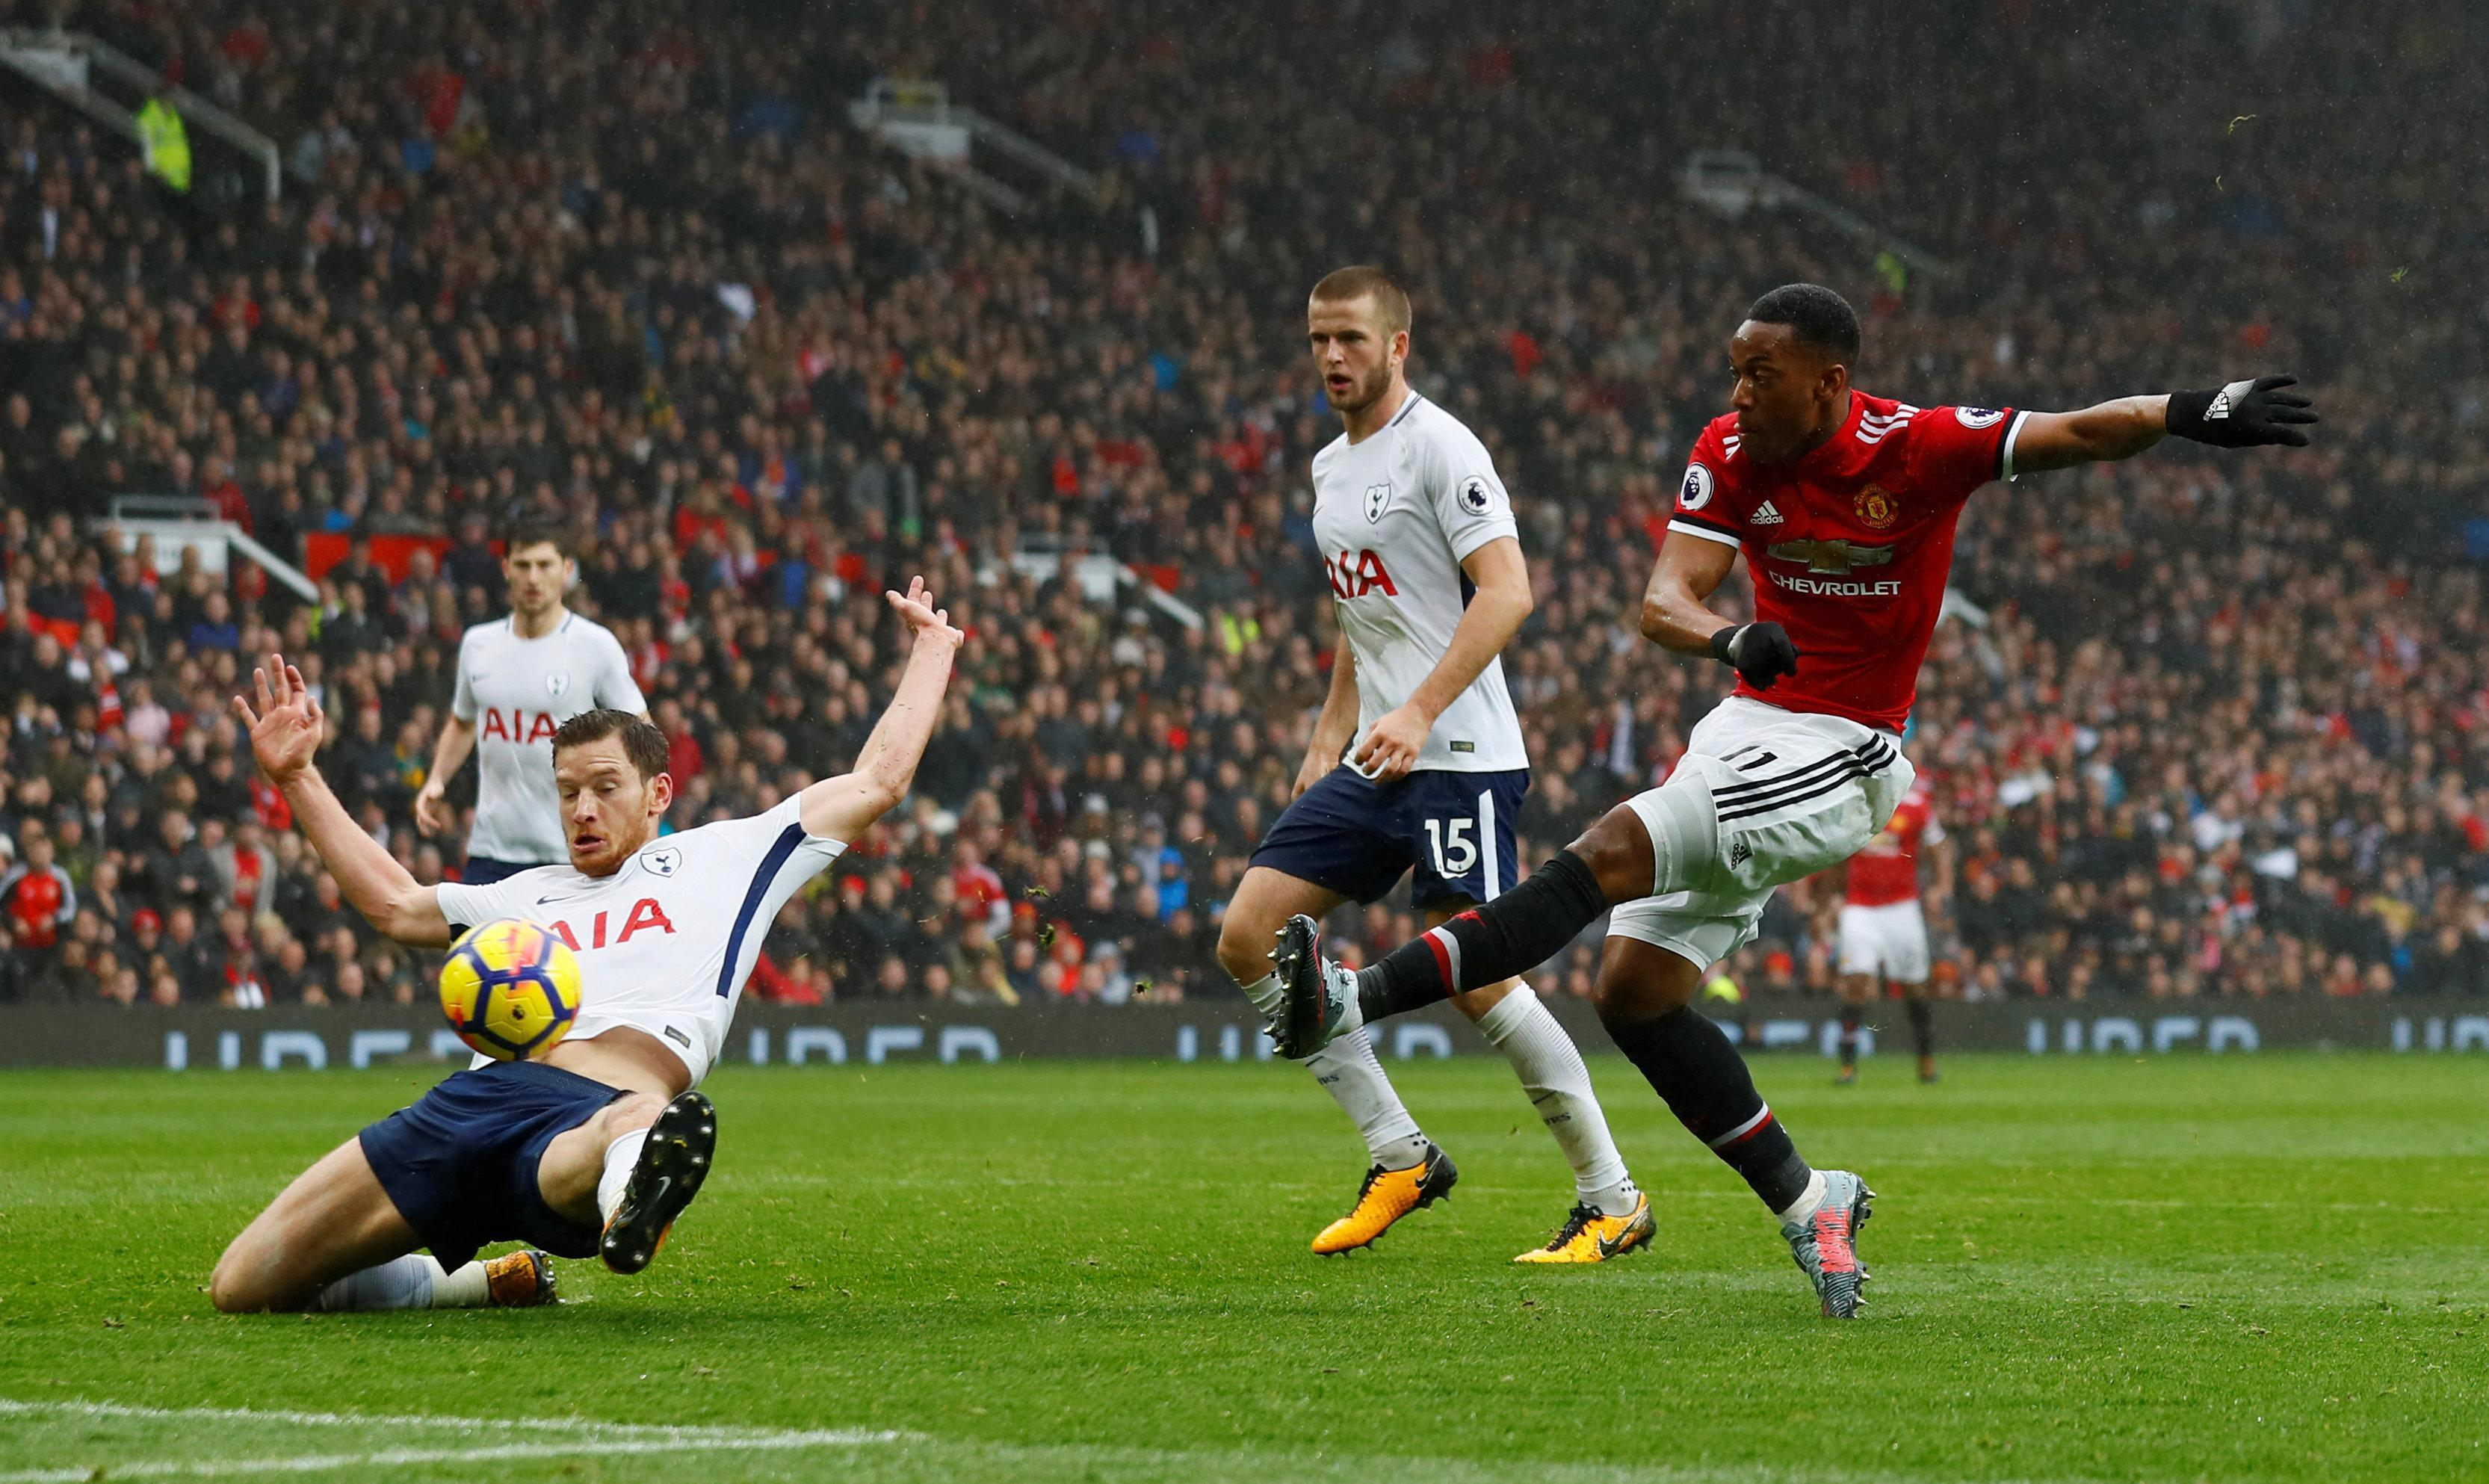 Martial's late winner last weekend sent Old Trafford into meltdown